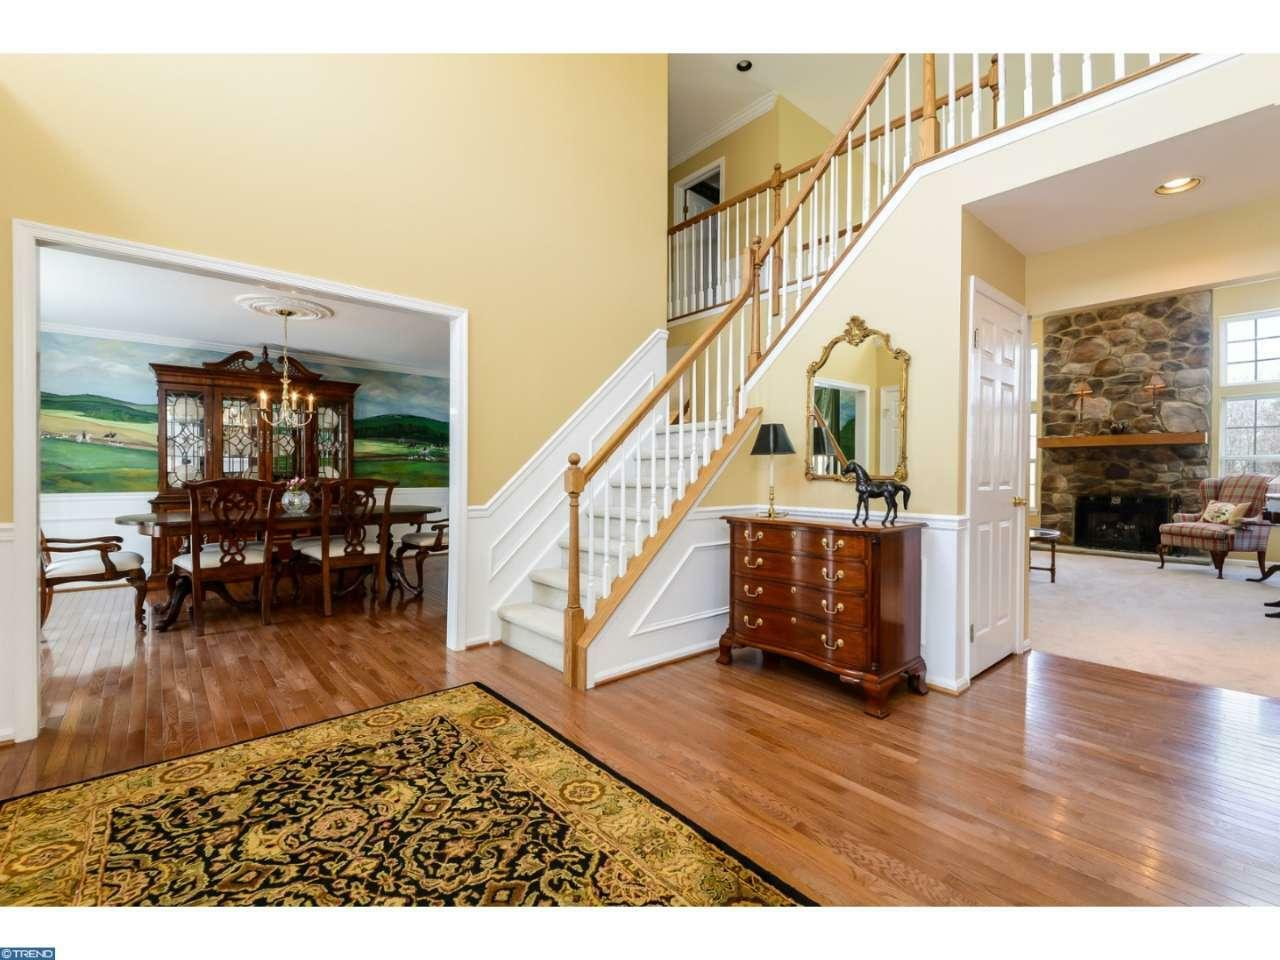 4282 Shedden Cir, Doylestown, PA - USA (photo 4)